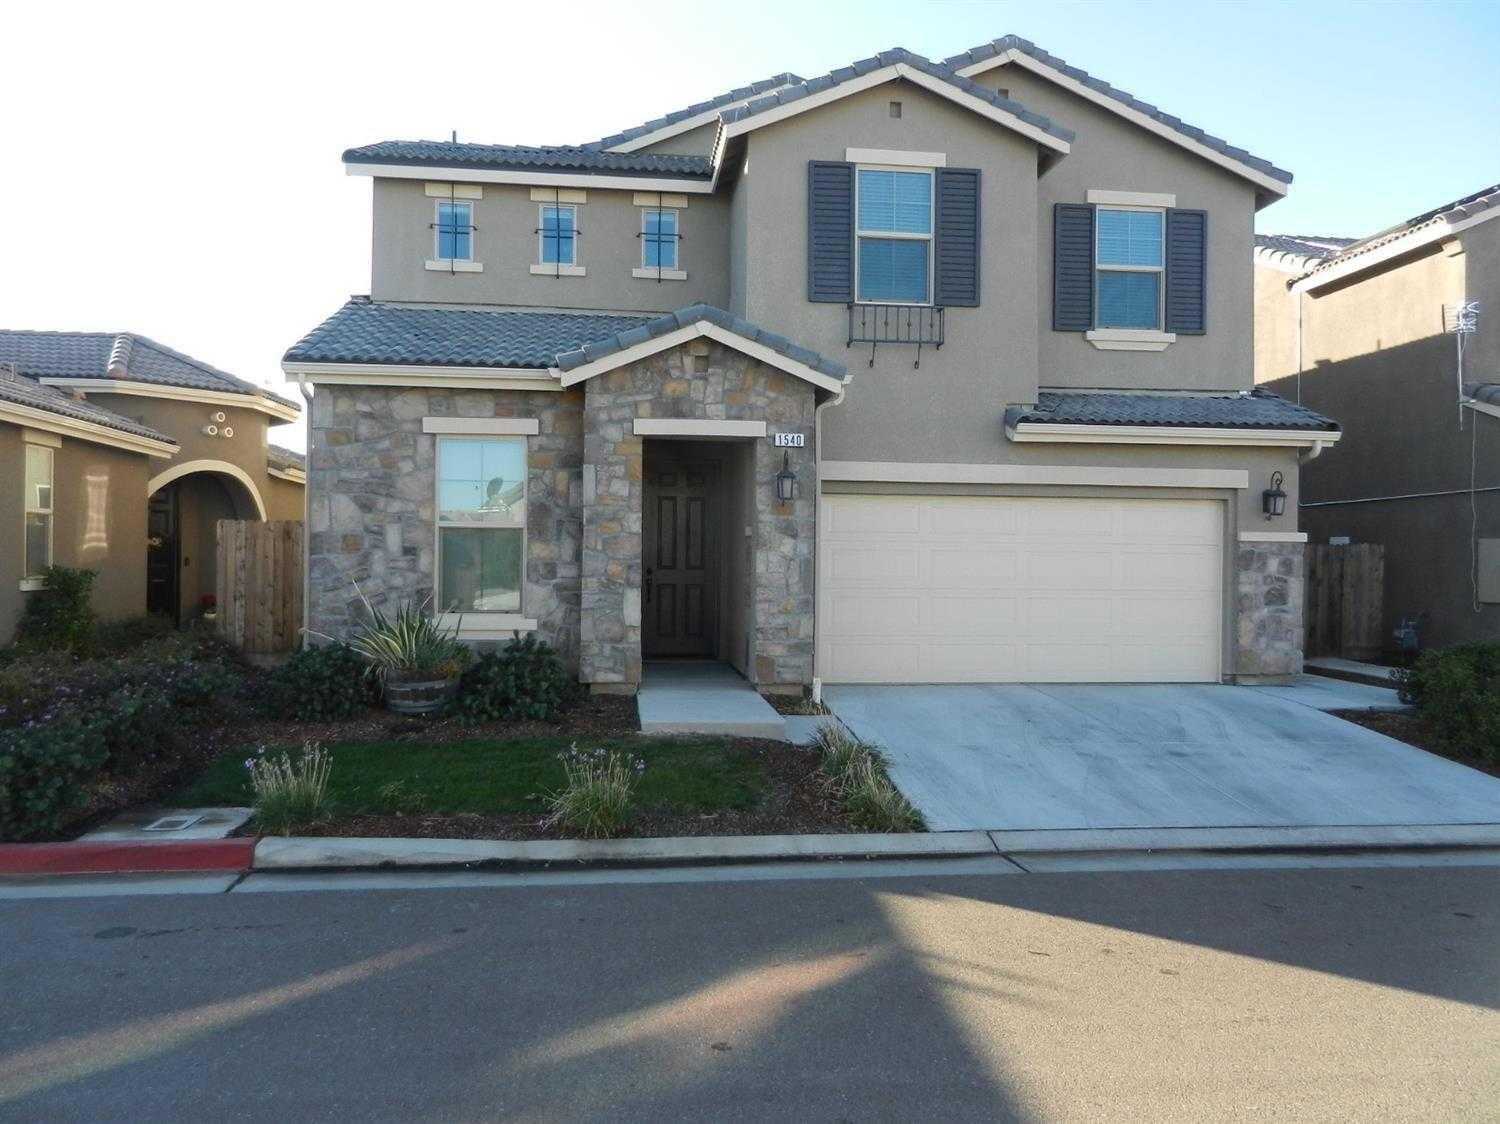 $449,000 - 4Br/3Ba -  for Sale in Clovis